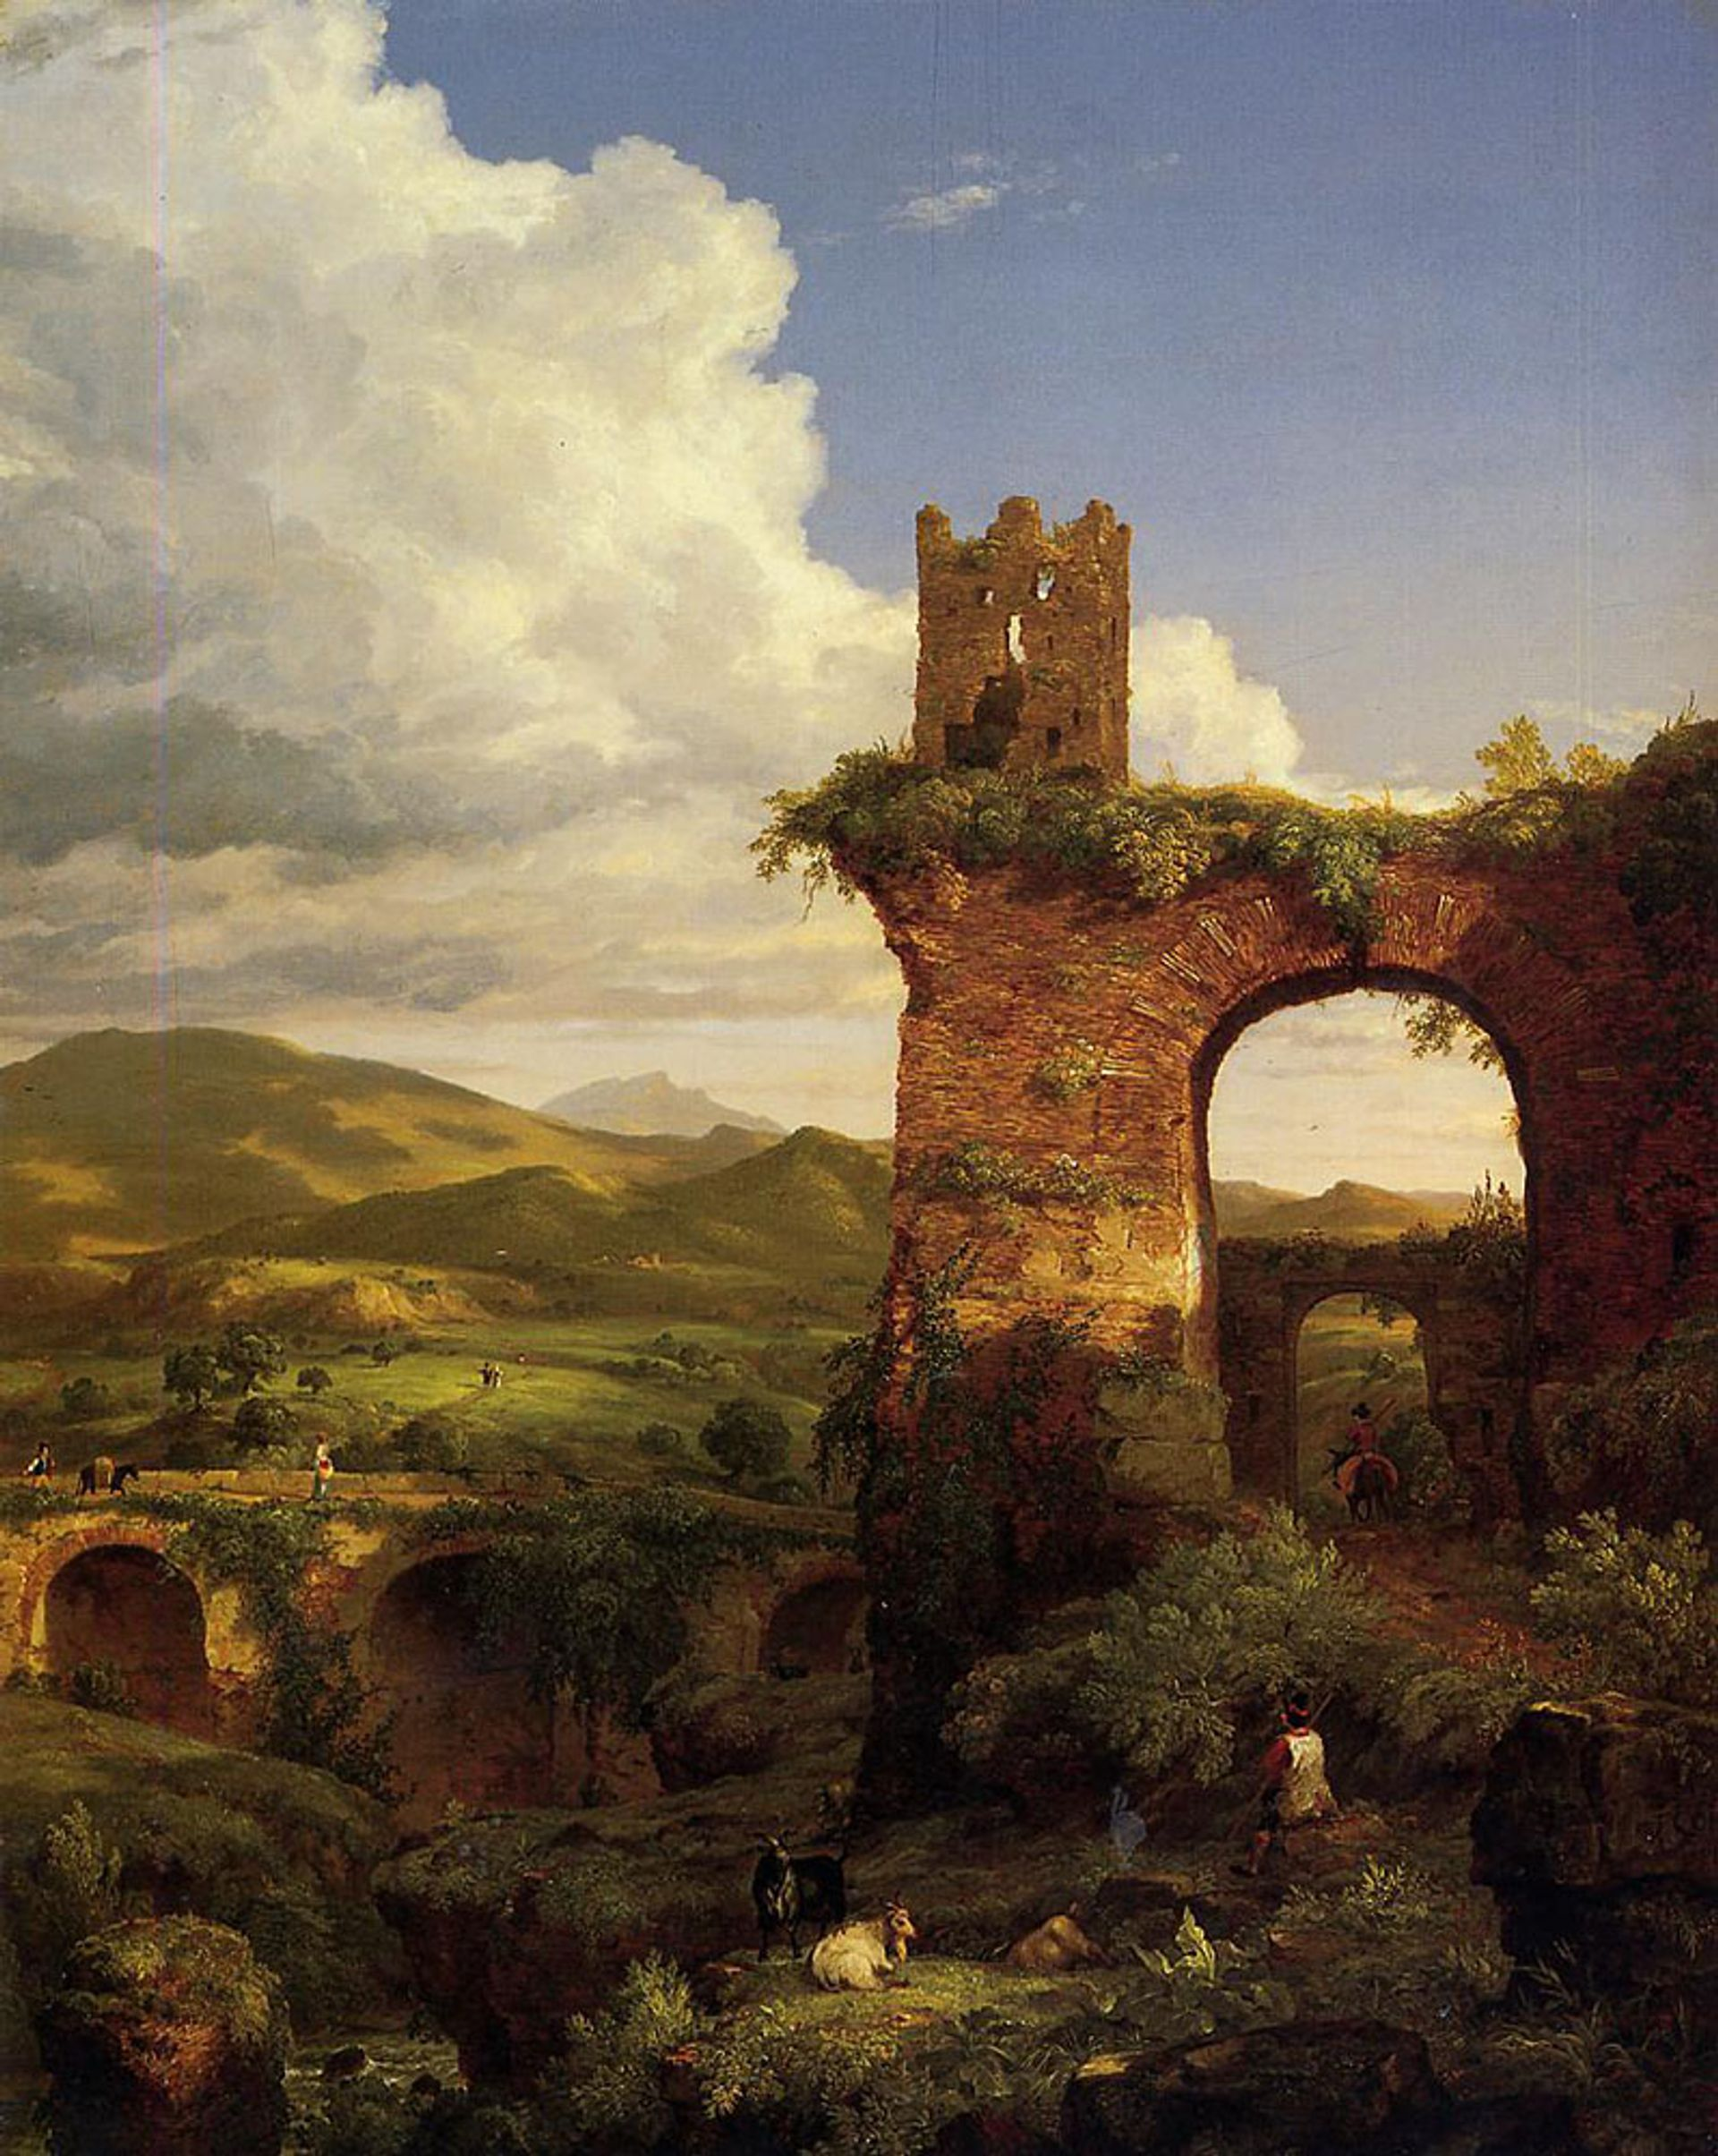 Thomas Cole's The Arch of Nero (1846), sold by the Newark Museum of Art